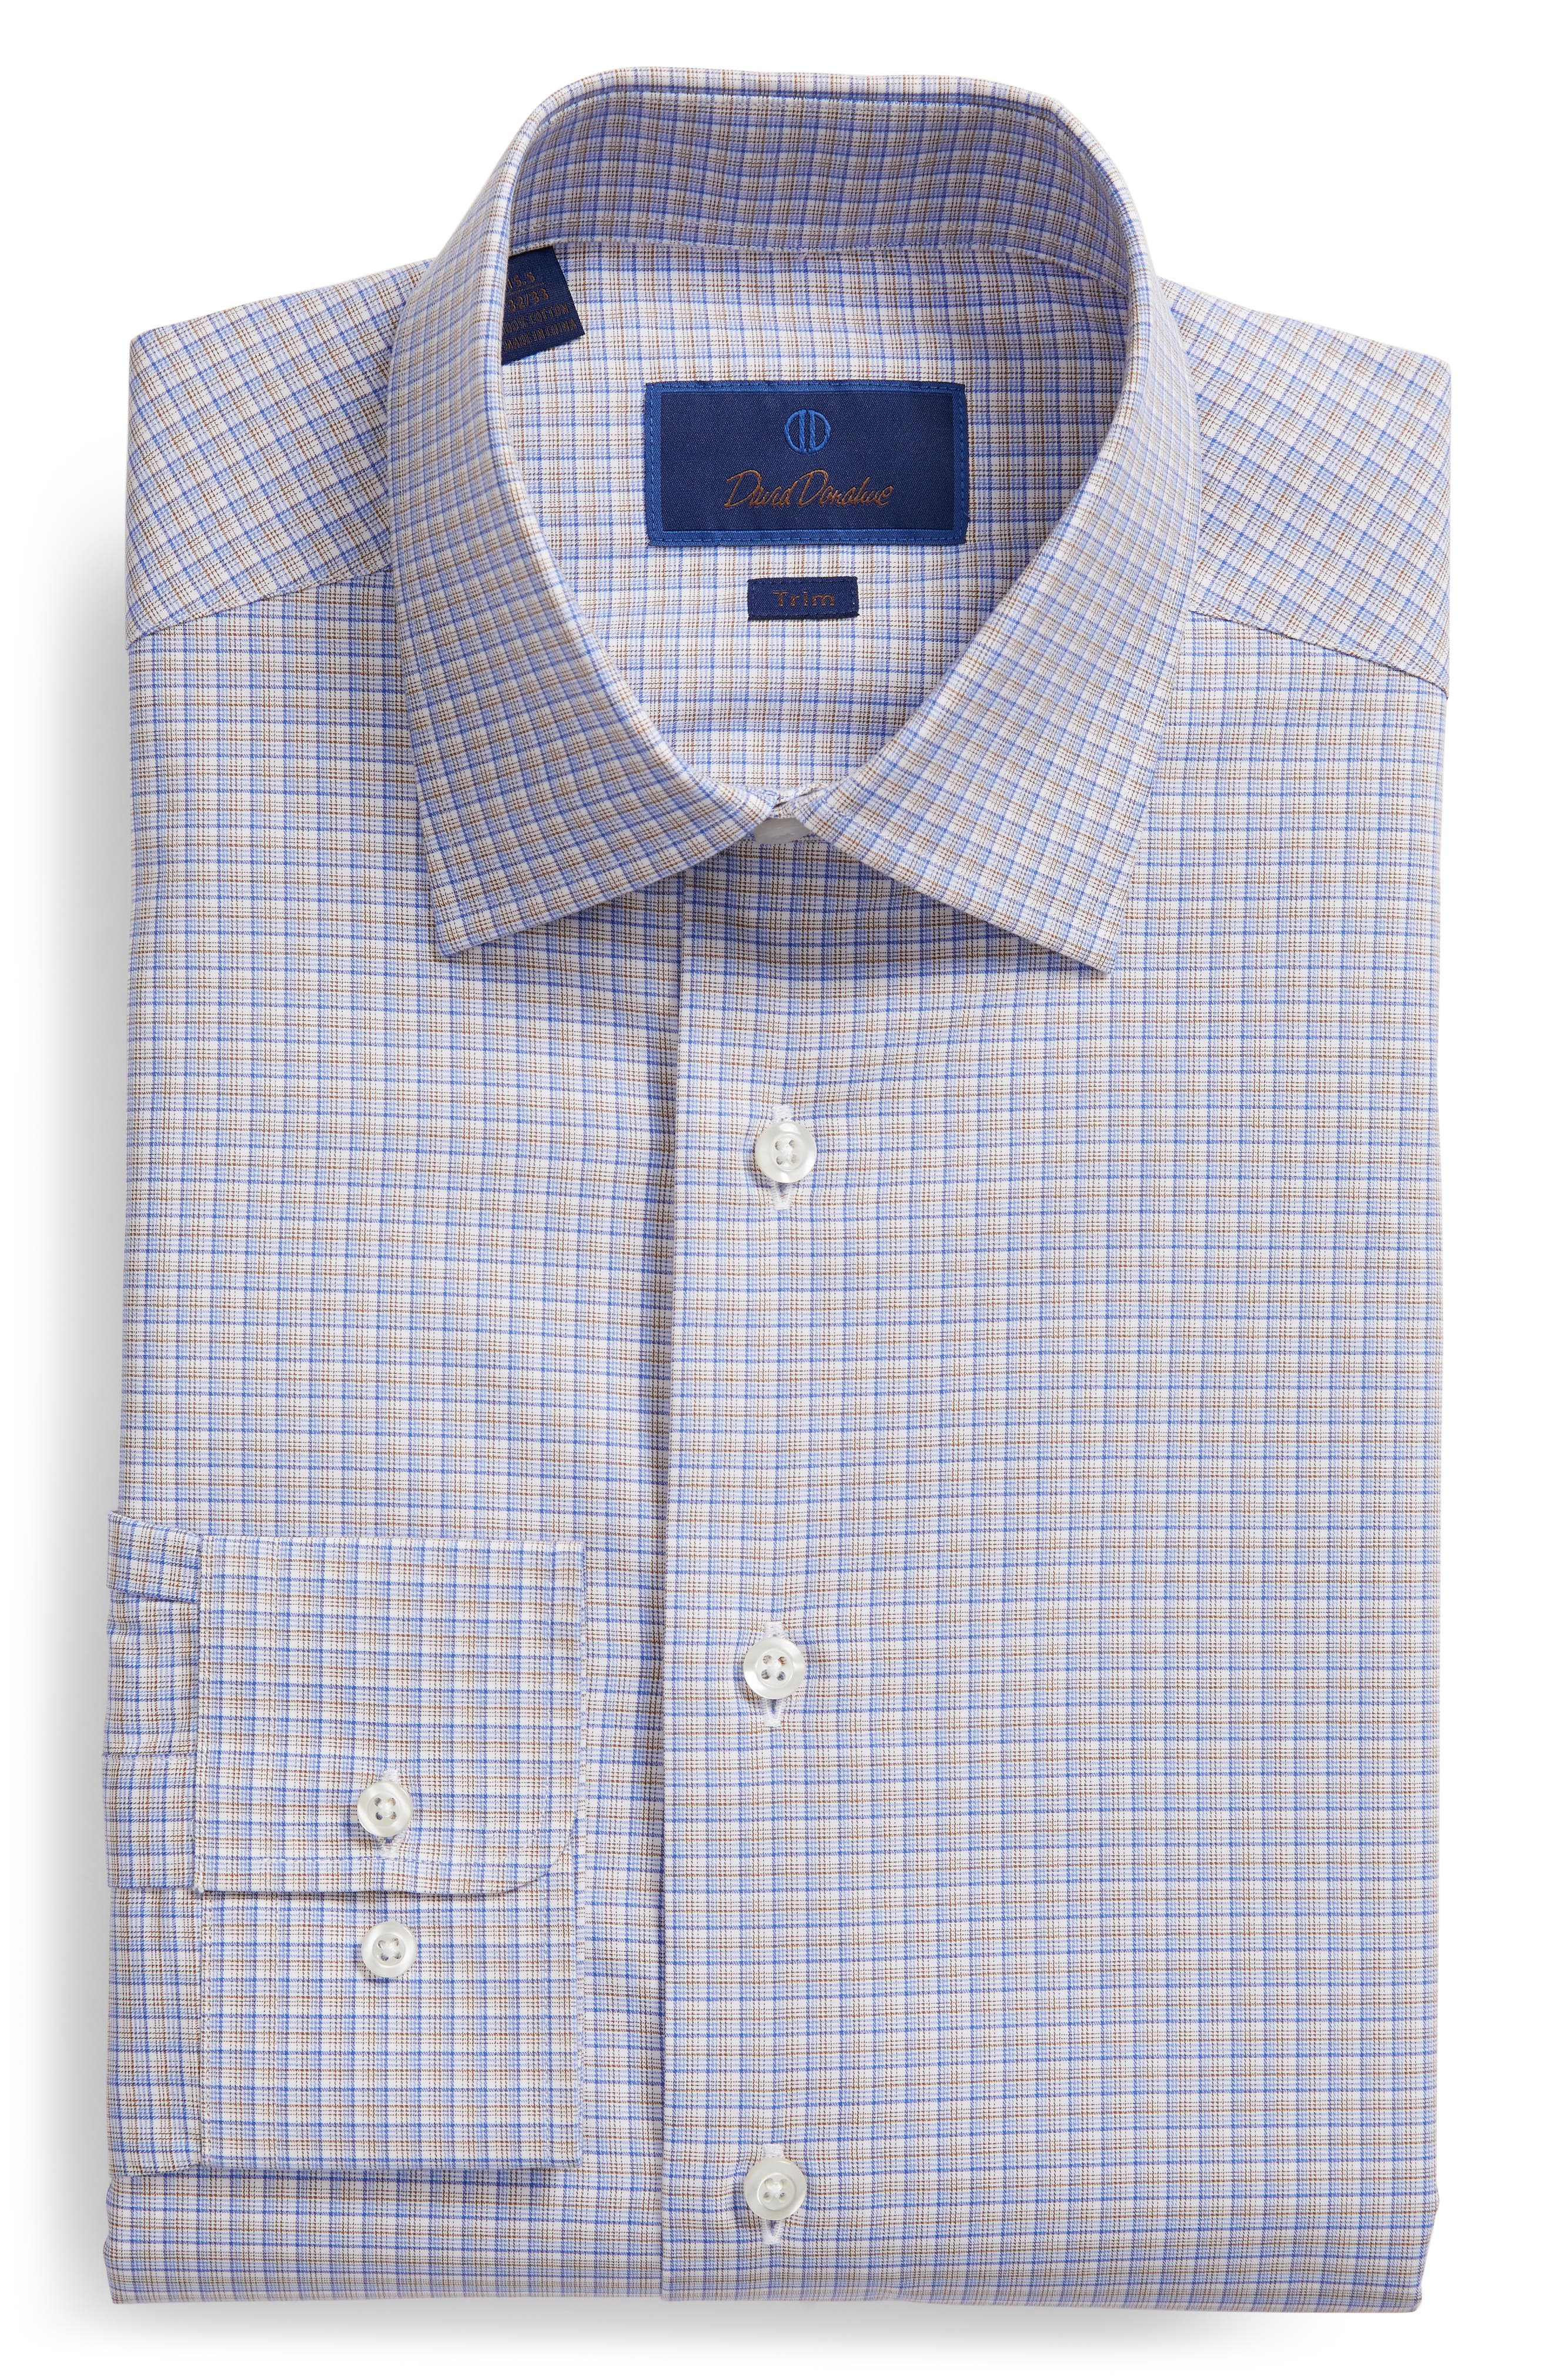 Trim Fit Check Dress Shirt,                             Alternate thumbnail 5, color,                             CHOCOLATE